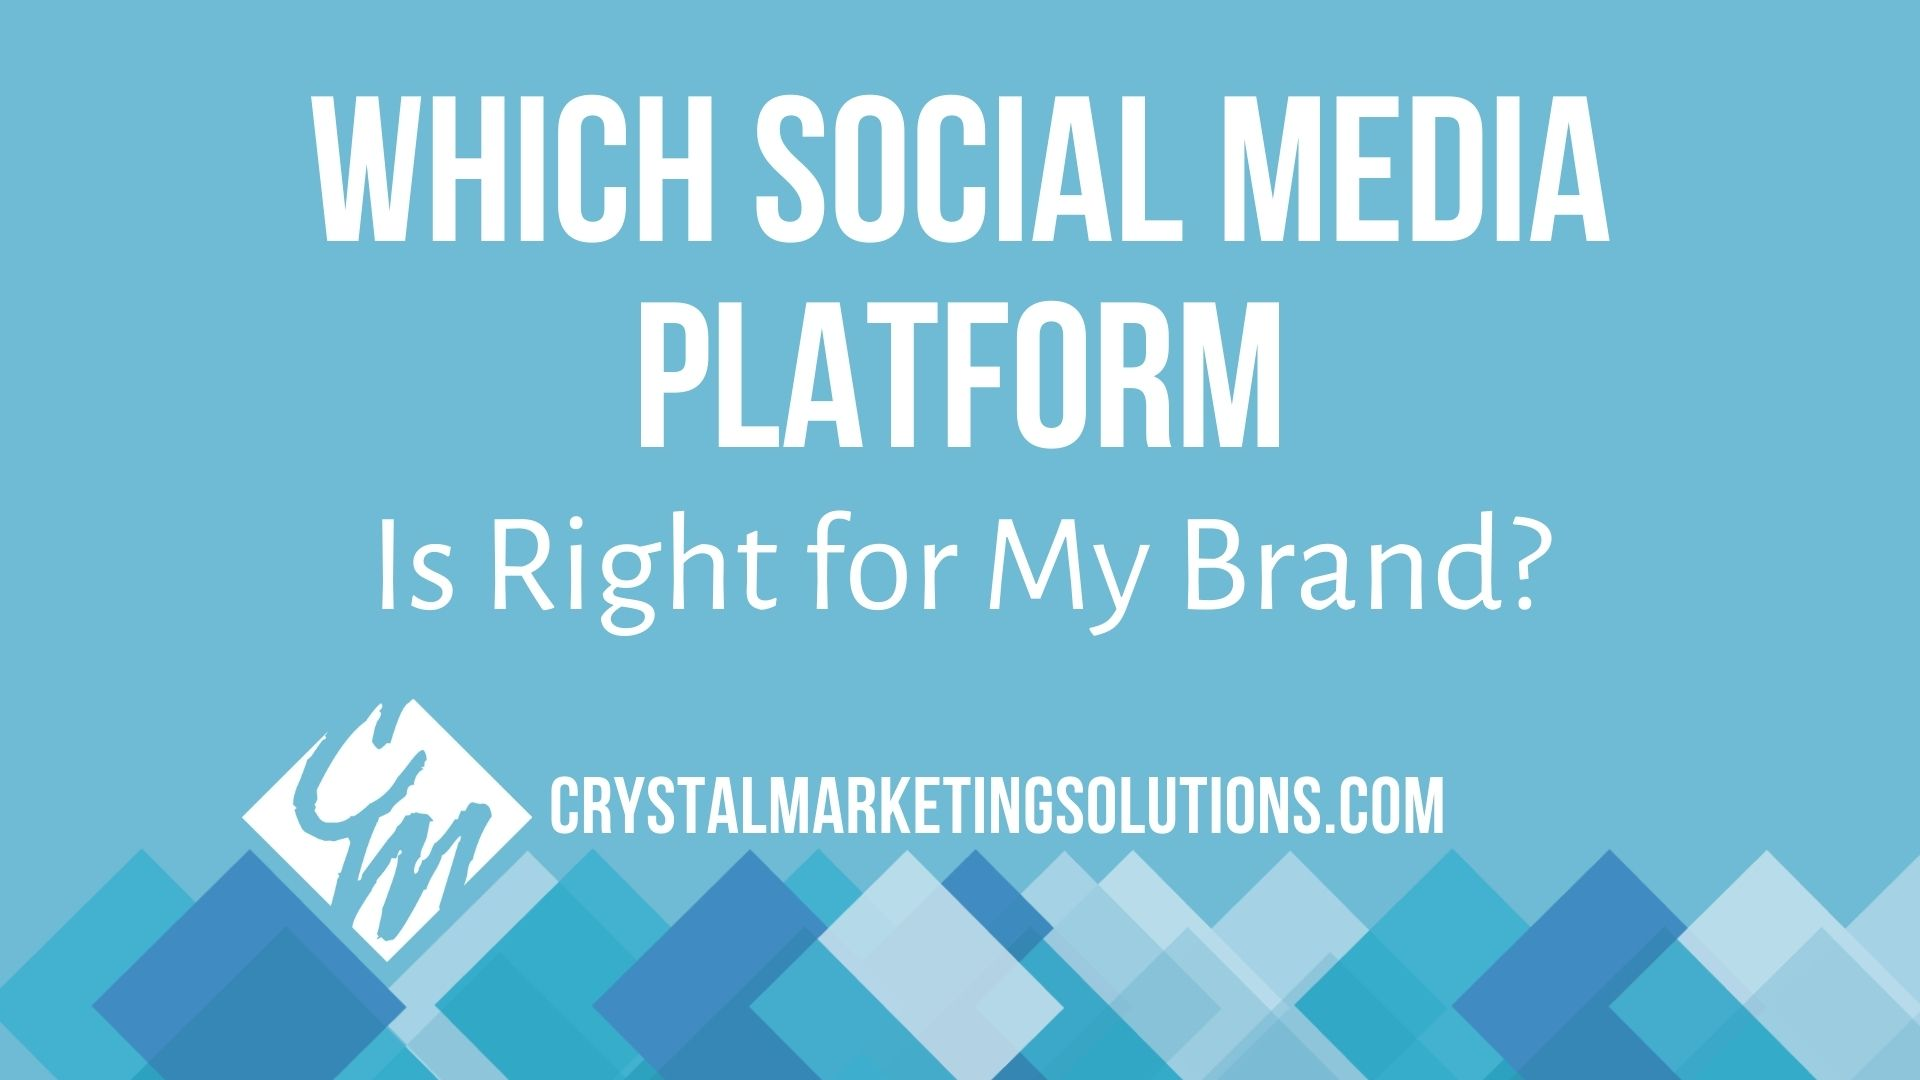 Which Social Media Platform Is Right for My Brand?